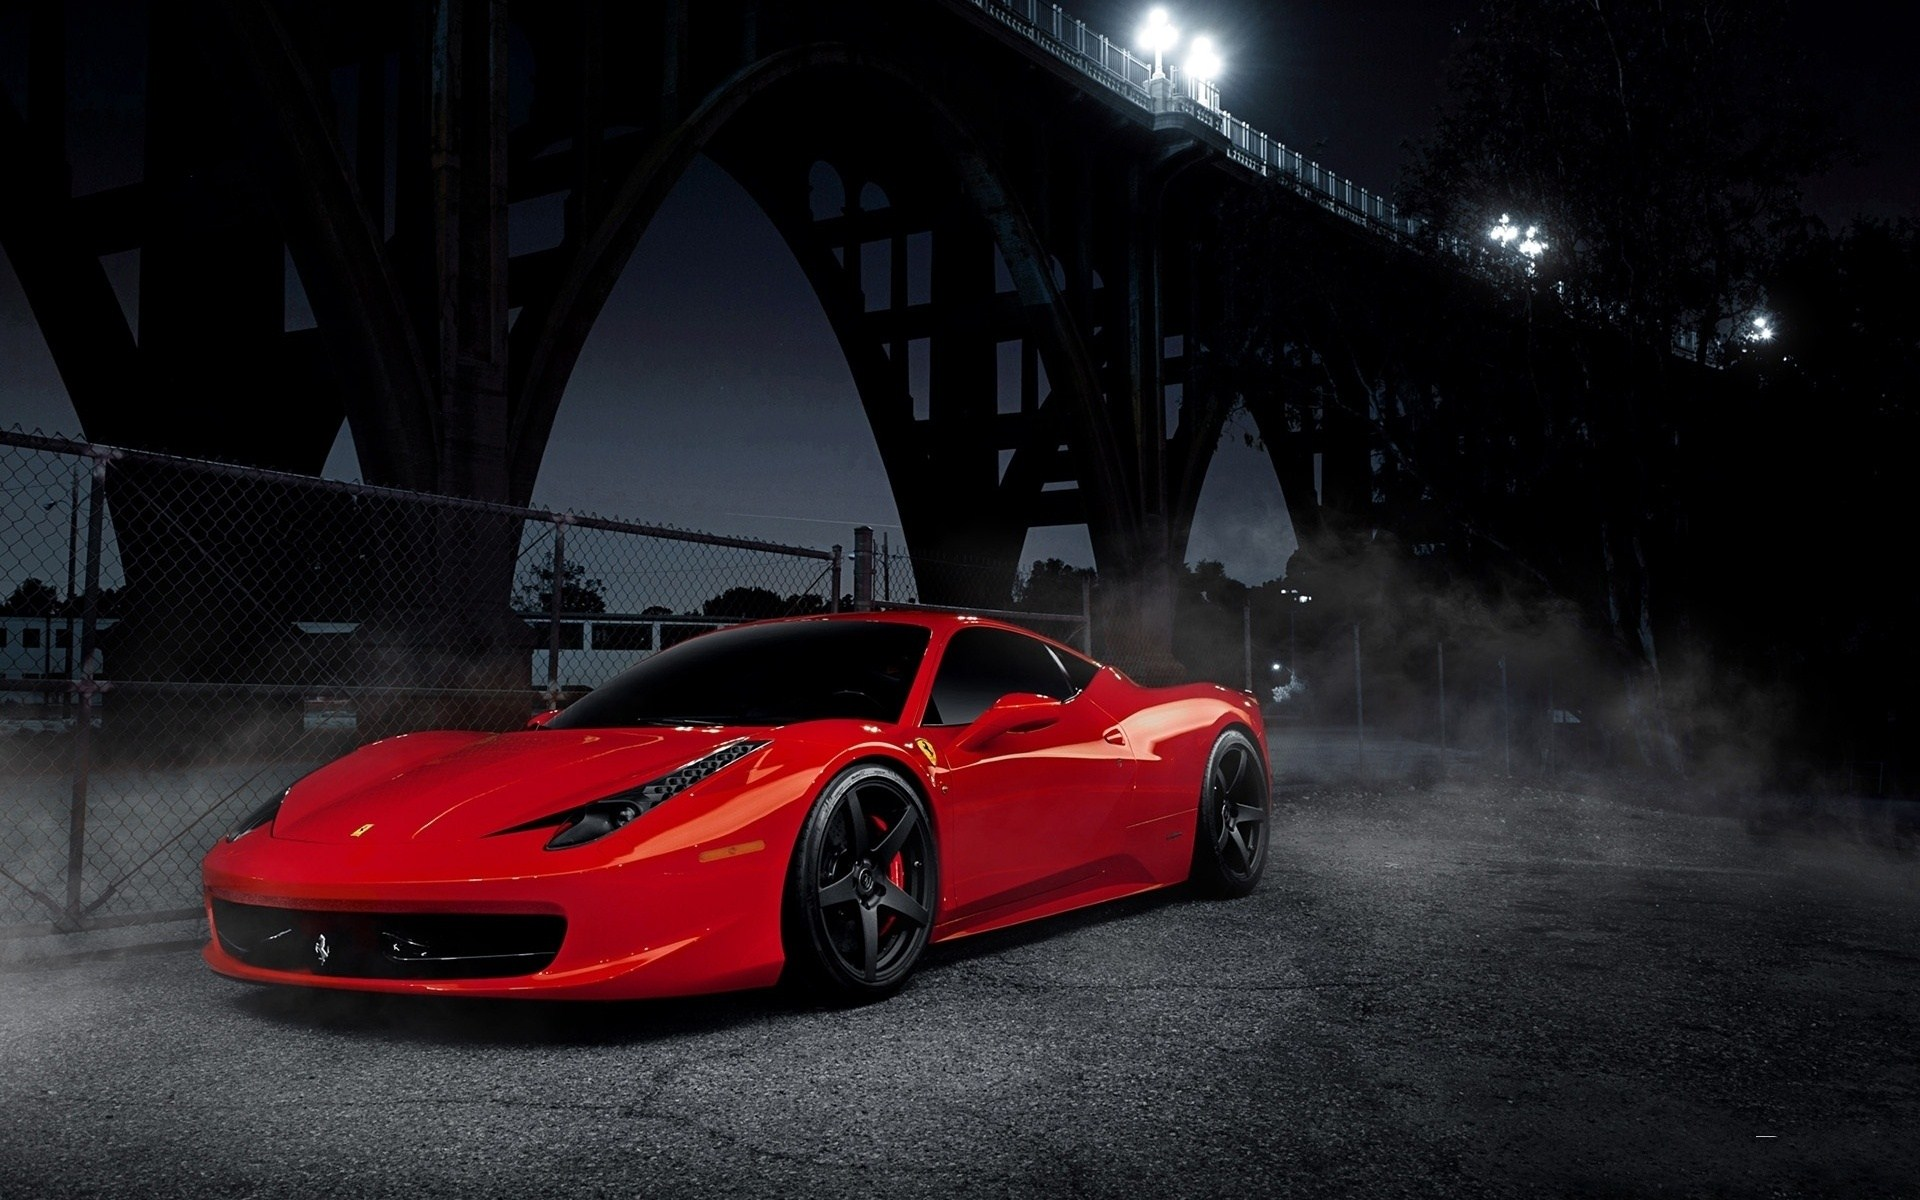 Ferrari 458 Wallpapers